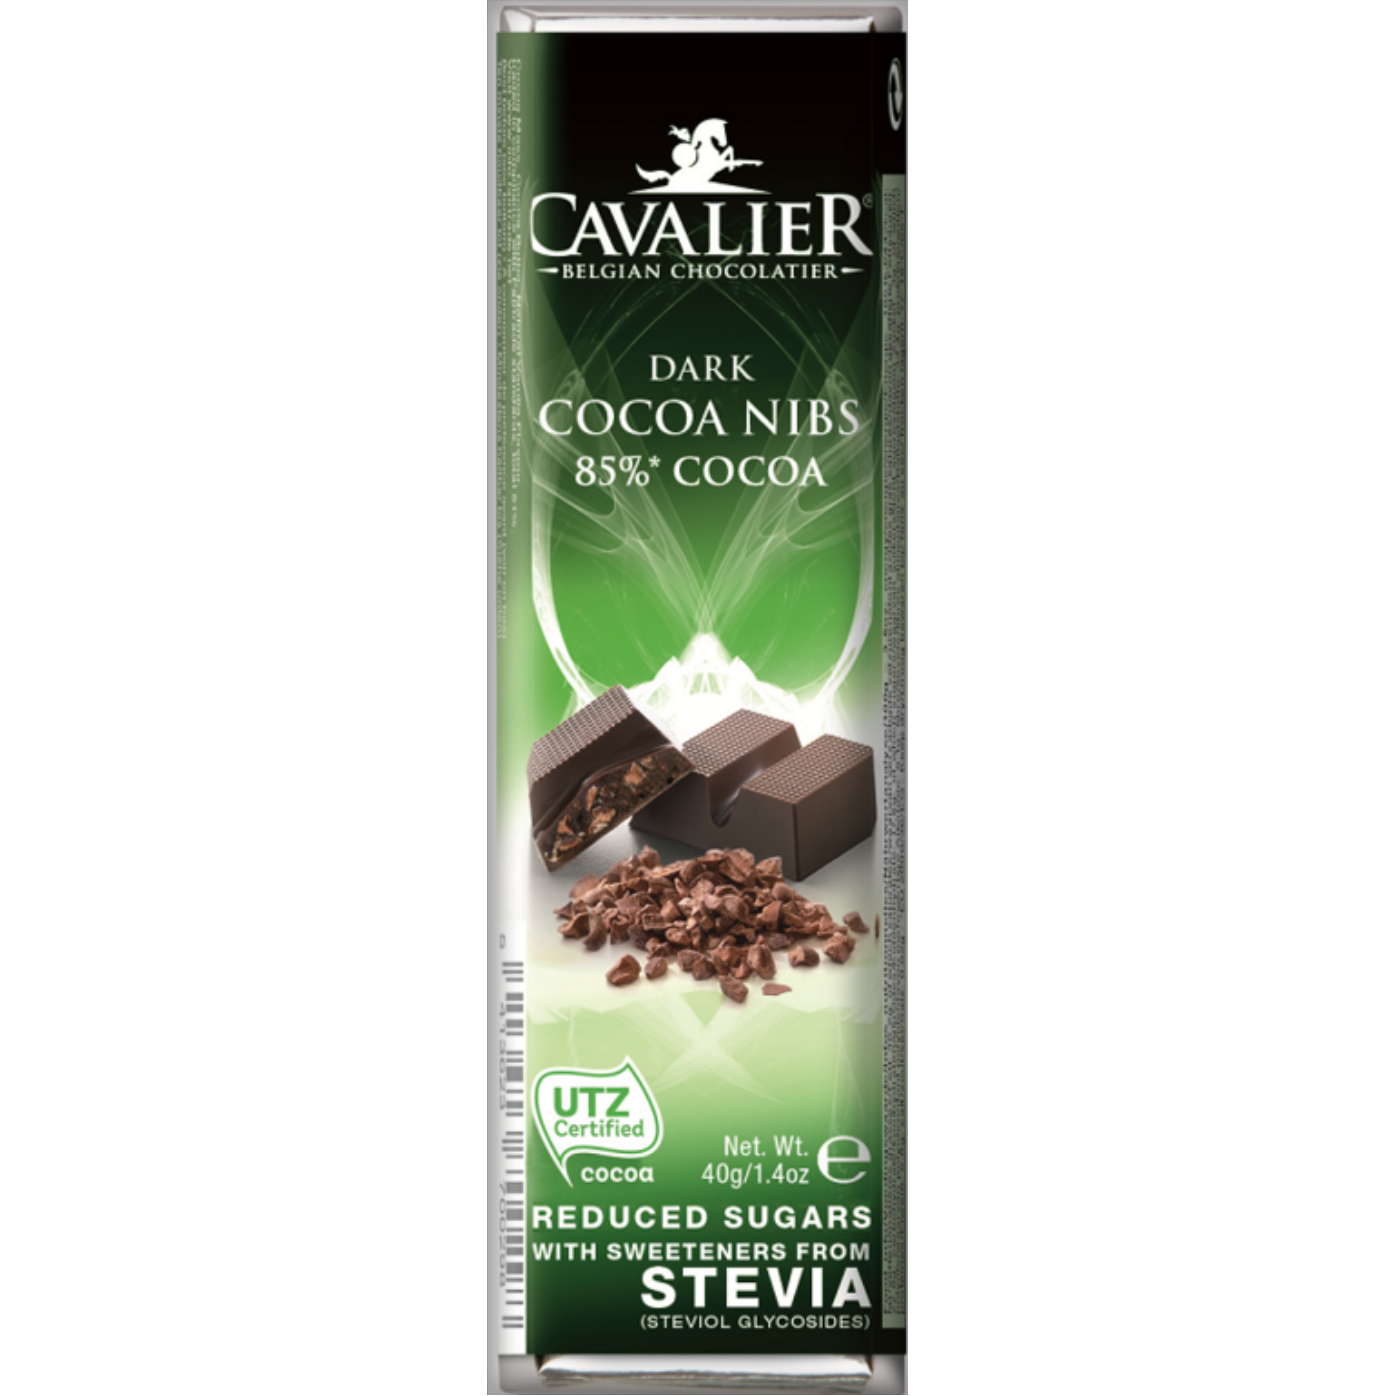 Cavalier Chocolate Reduced Sugar with Stevia 85% Dark Chocolate Cocoa Nibs 43g Bar